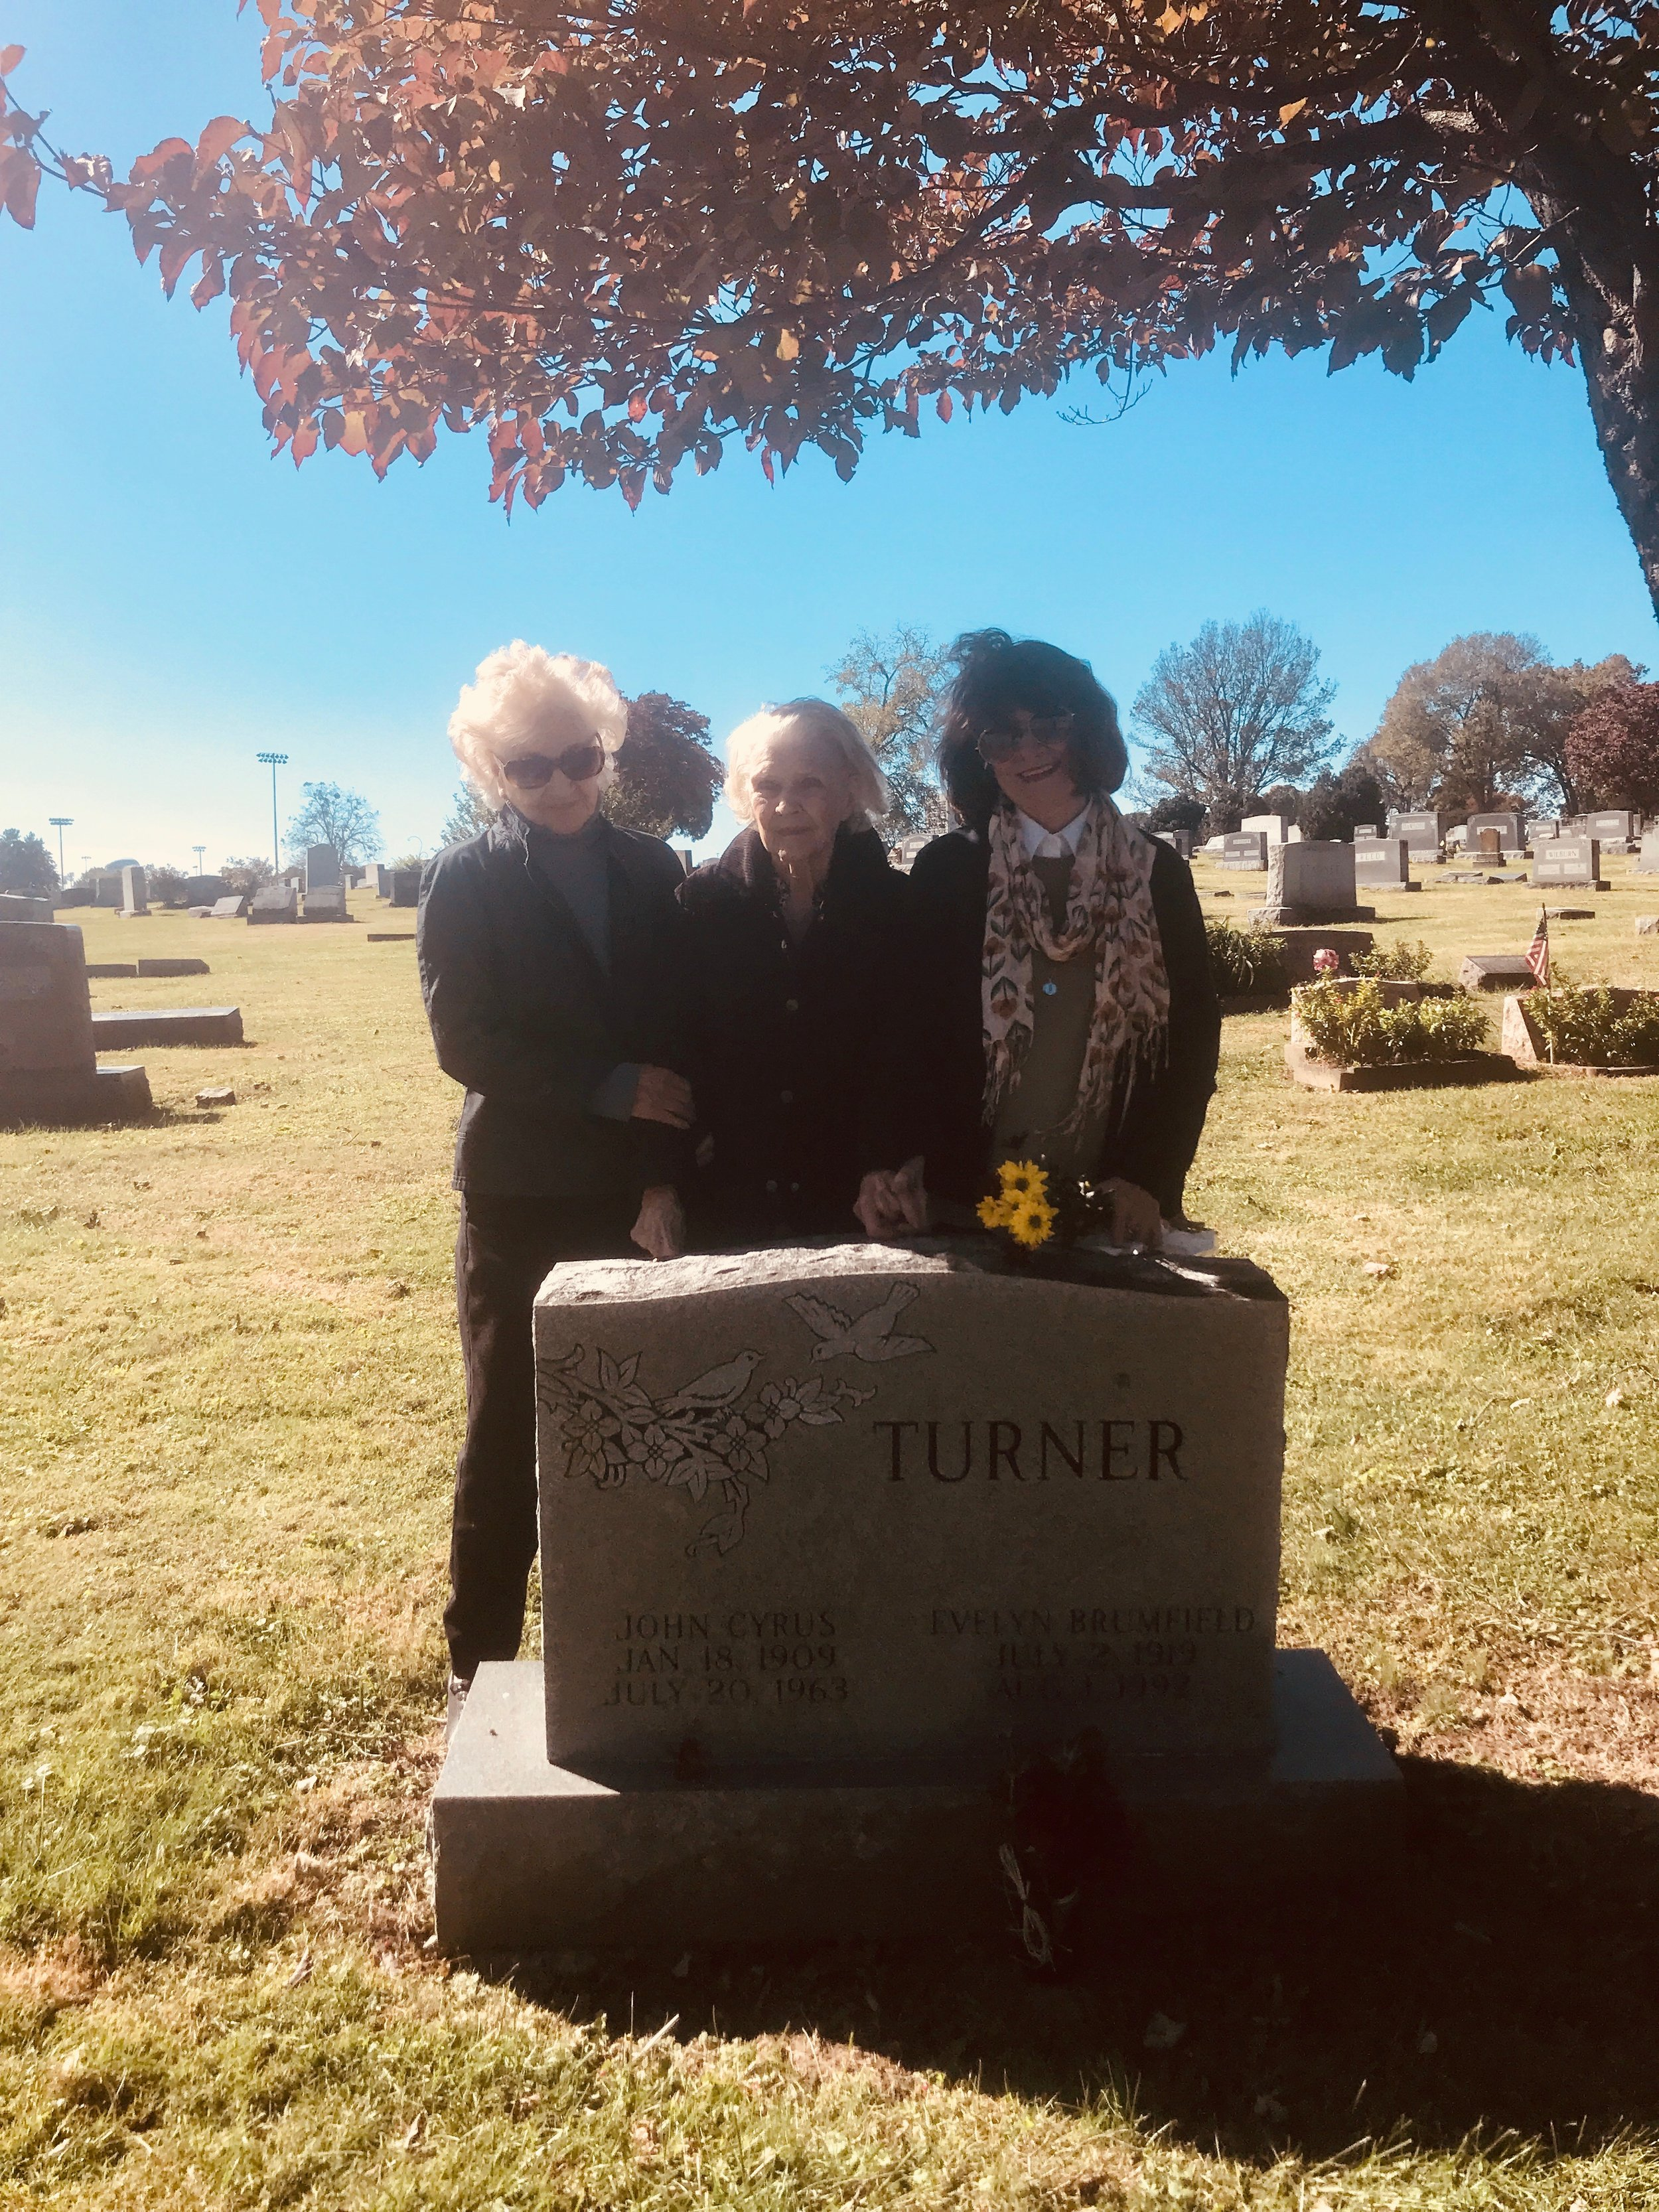 My great aunt Naomi, my grandmother Gladys, my mother Angela, at the grave of my great aunt Evelyn and her husband JC